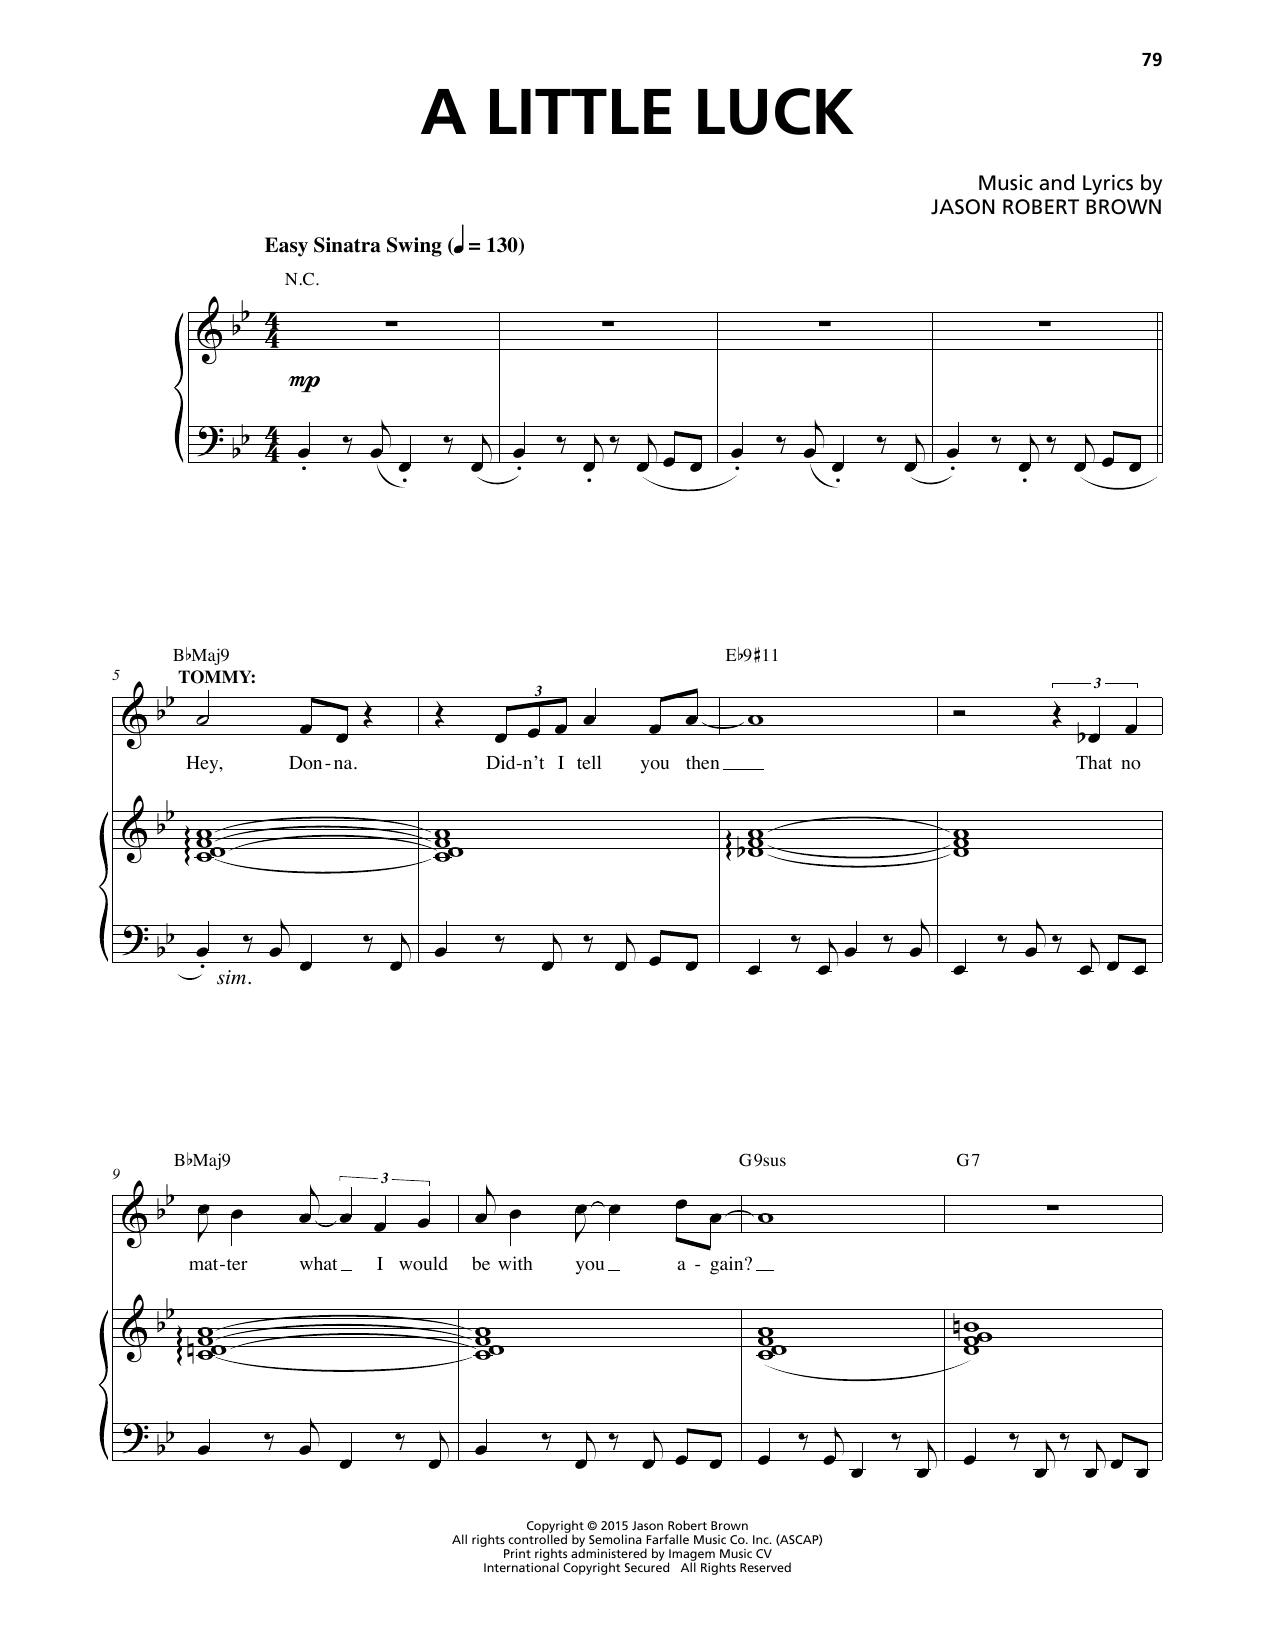 A Little Luck Sheet Music